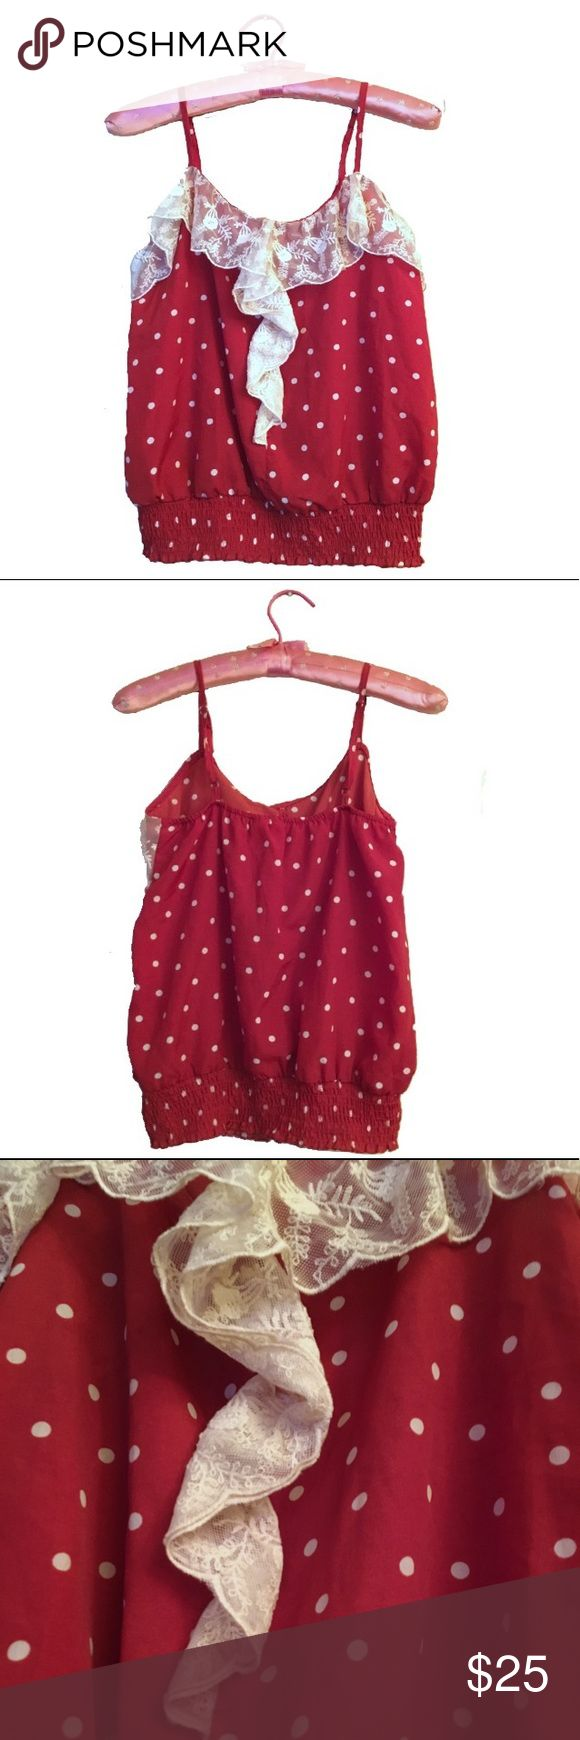 Red Camel burned orange polka lace strappy tank *Size: Medium* *100% polyester* *Machine wash cold/gentle cycle* -Burned orange exterior with white polka dots -Frilly Lace neckline in front -Adjustable spaghetti straps -Elastic cinch at hip length -Never worn +Pairs well with jeans/shorts and sneakers/heels/flats. Red Camel Tops Blouses